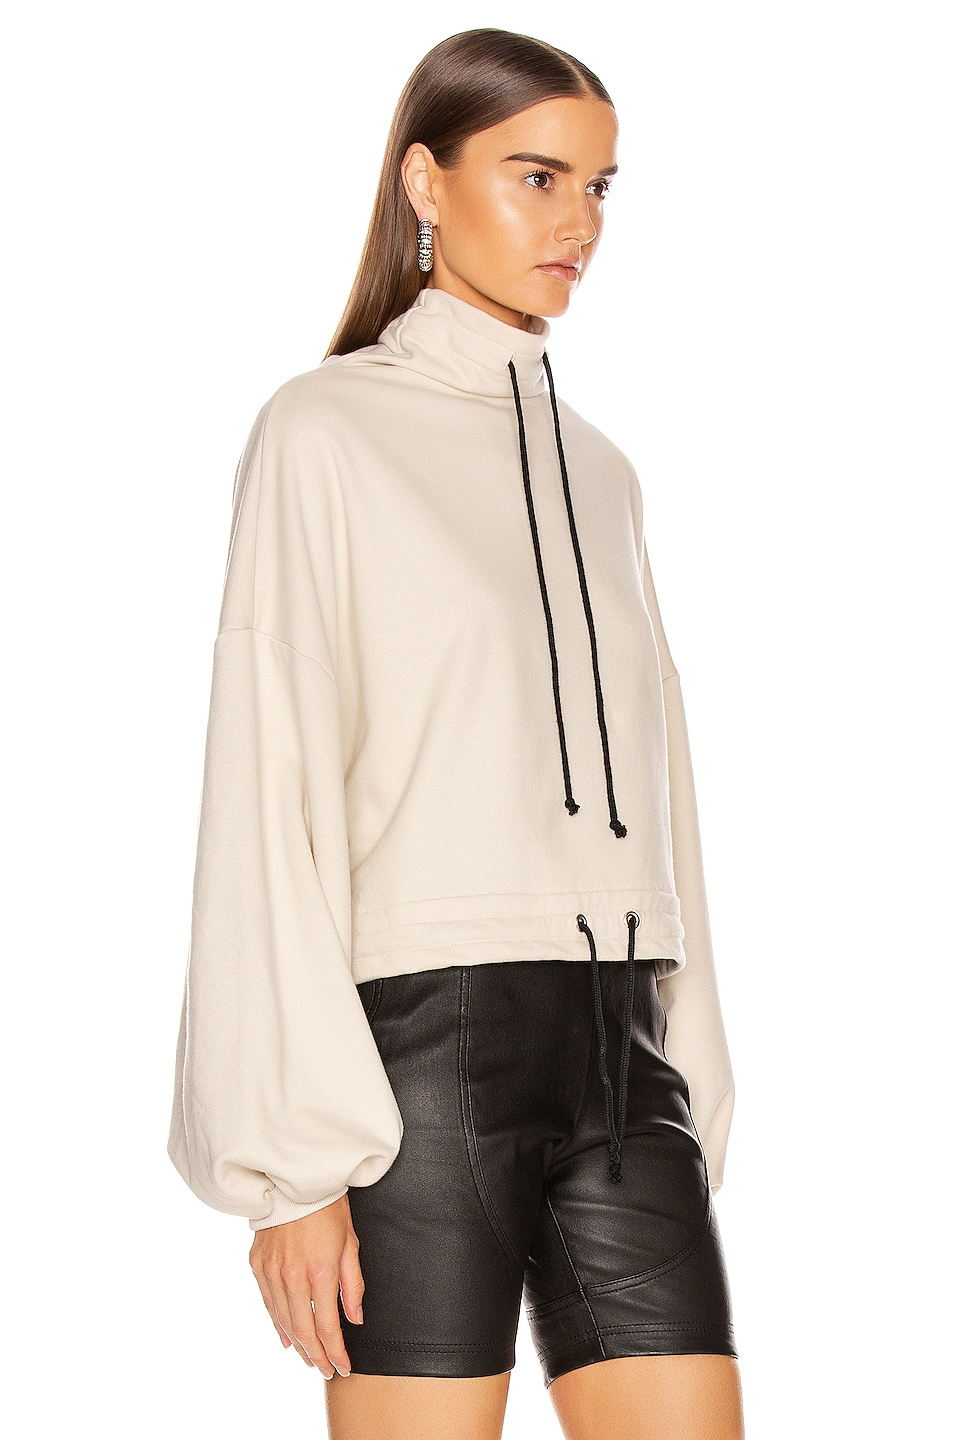 Image 3 of The Range Contra Terry Cinched Bubble Sleeve Sweatshirt in Limestone